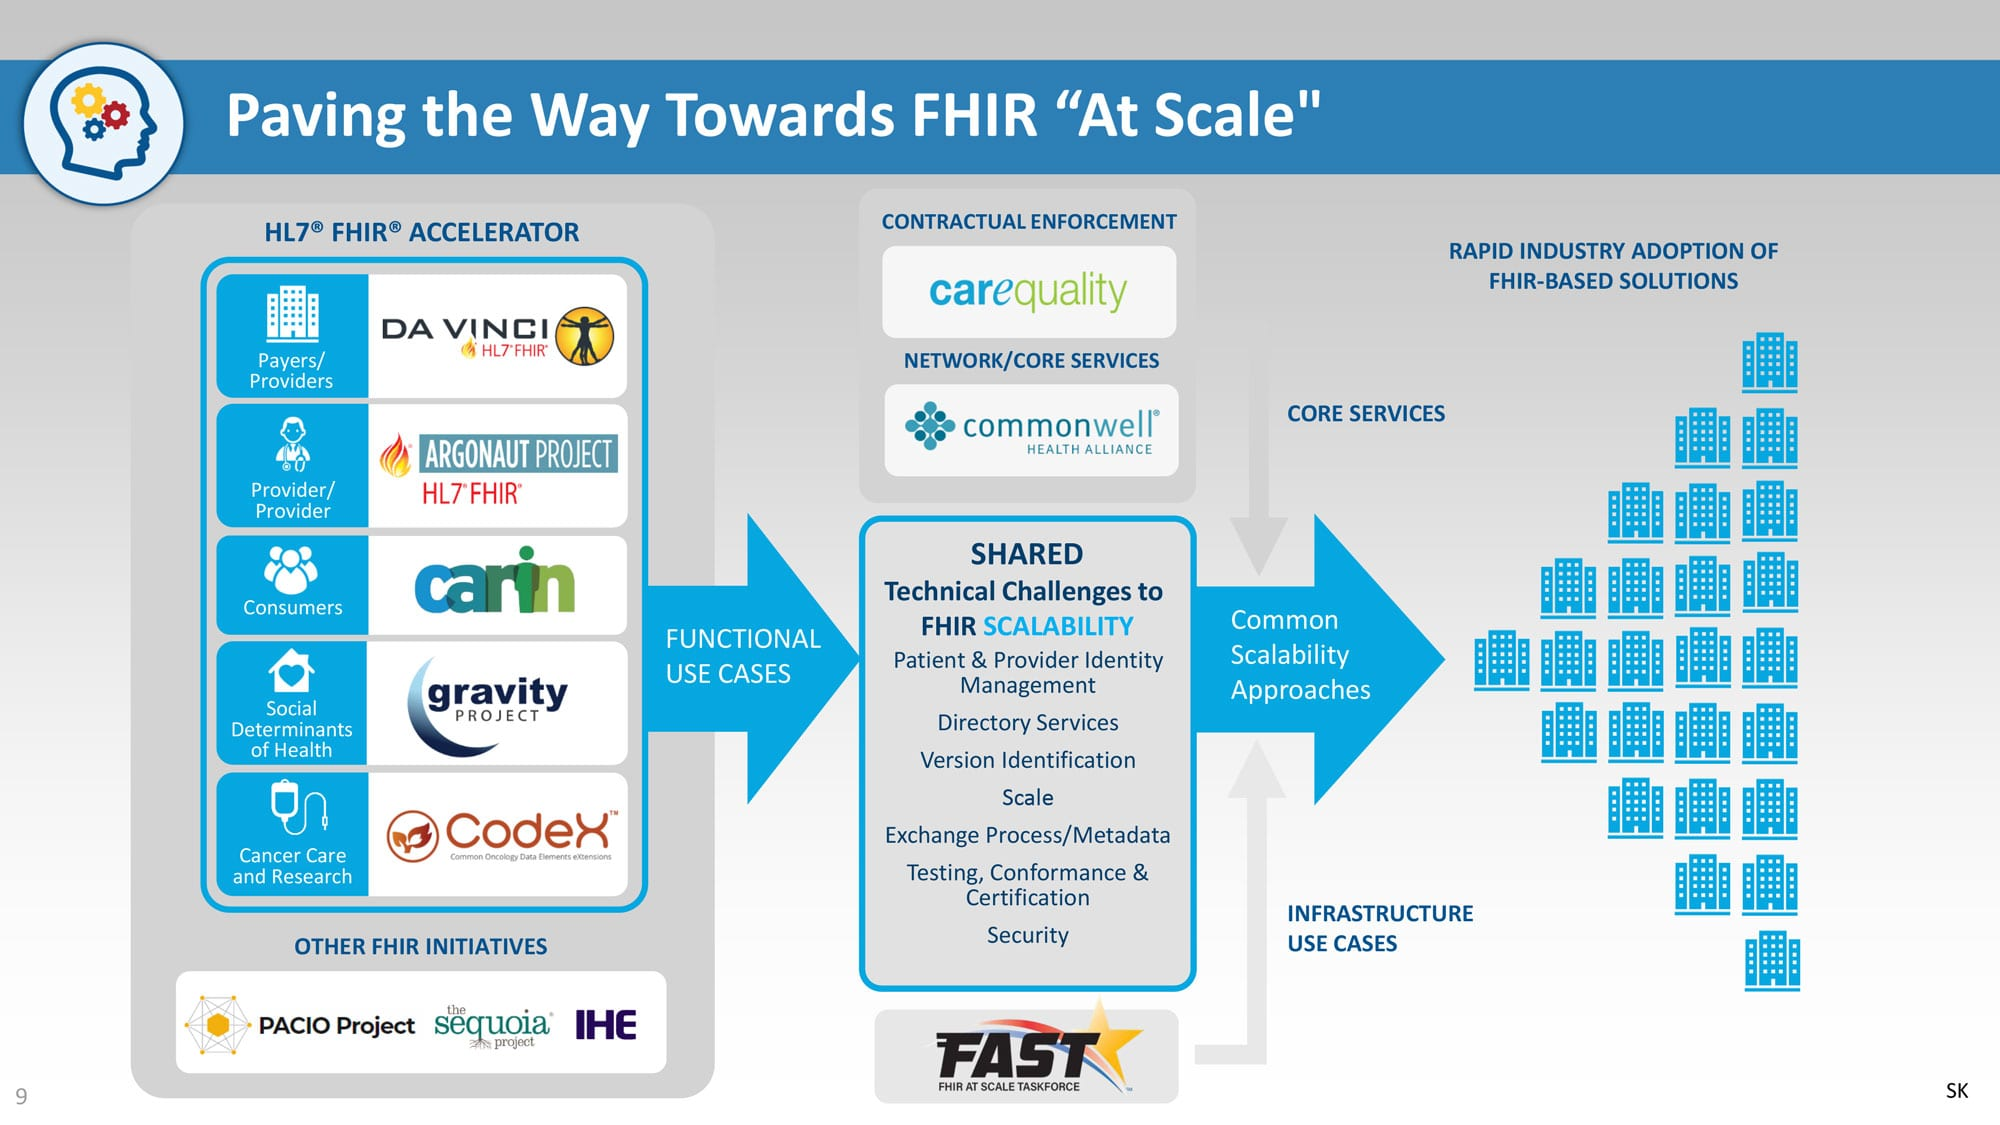 FHIR at scale